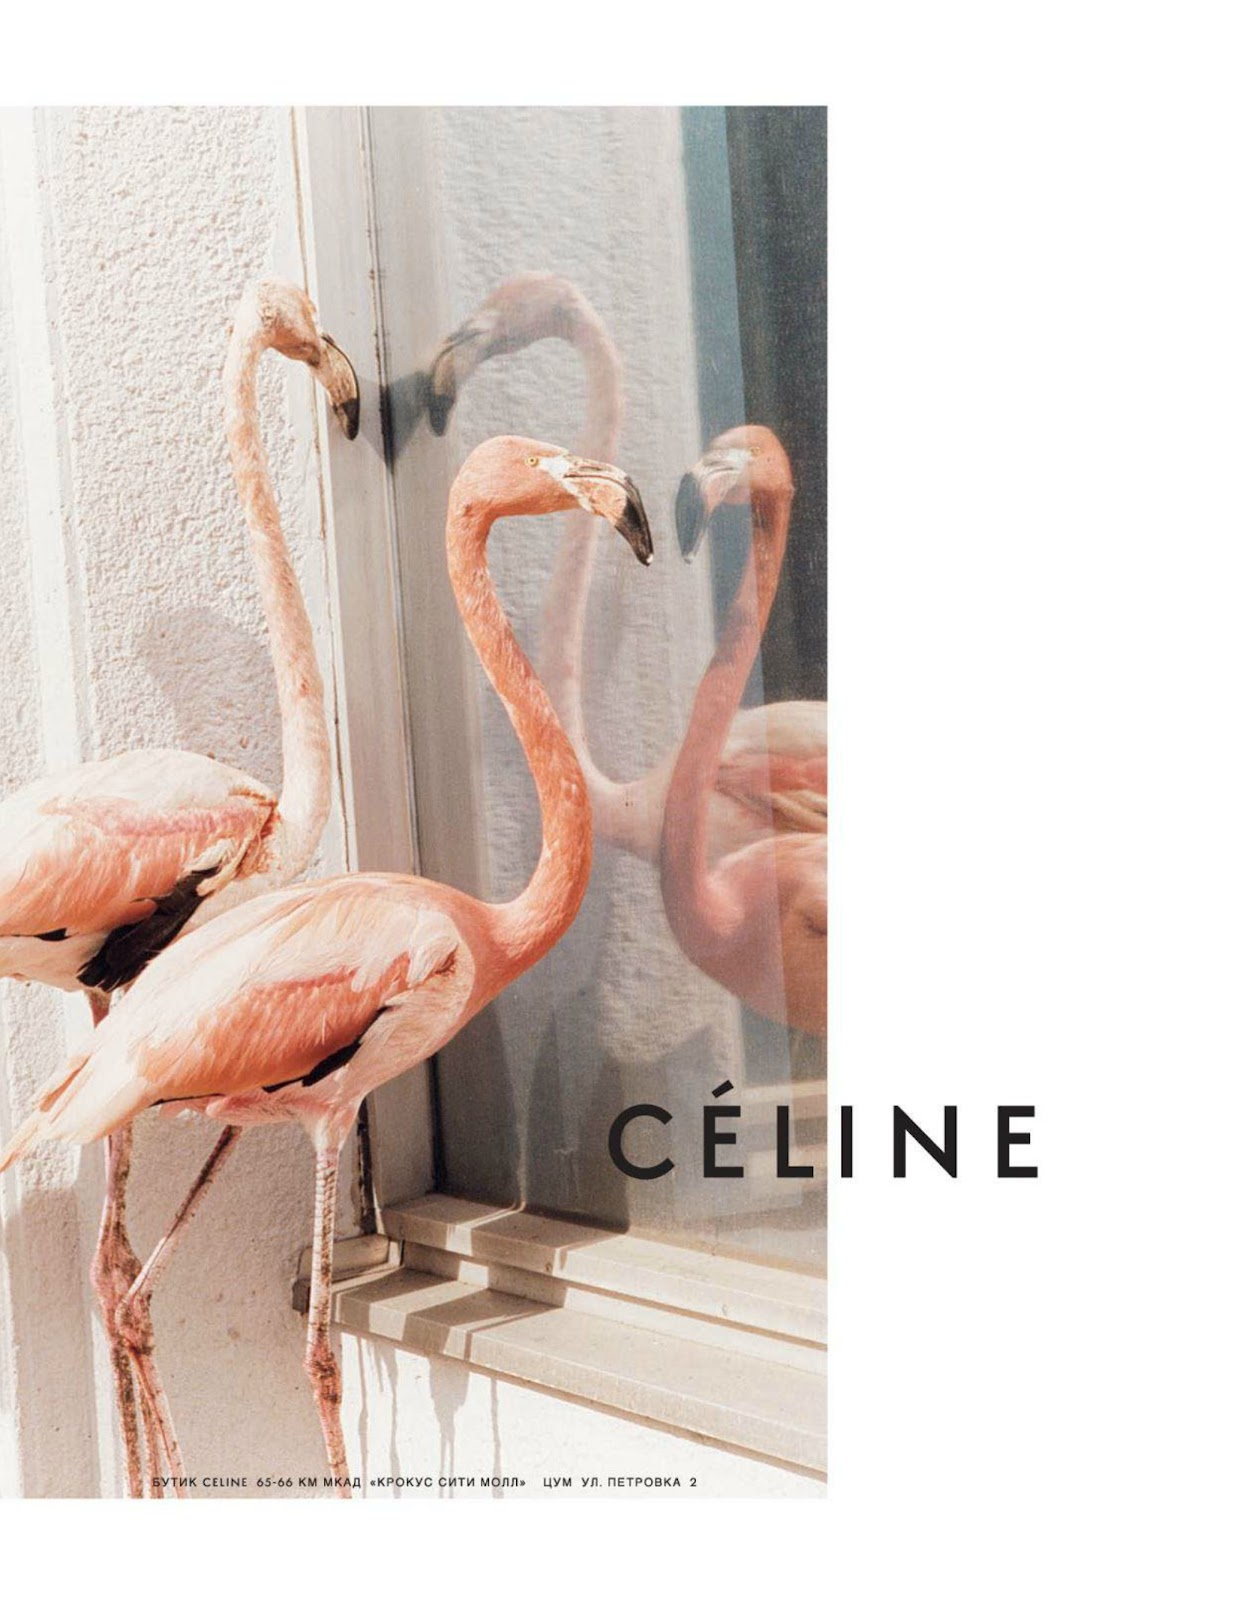 Céline fashion photography